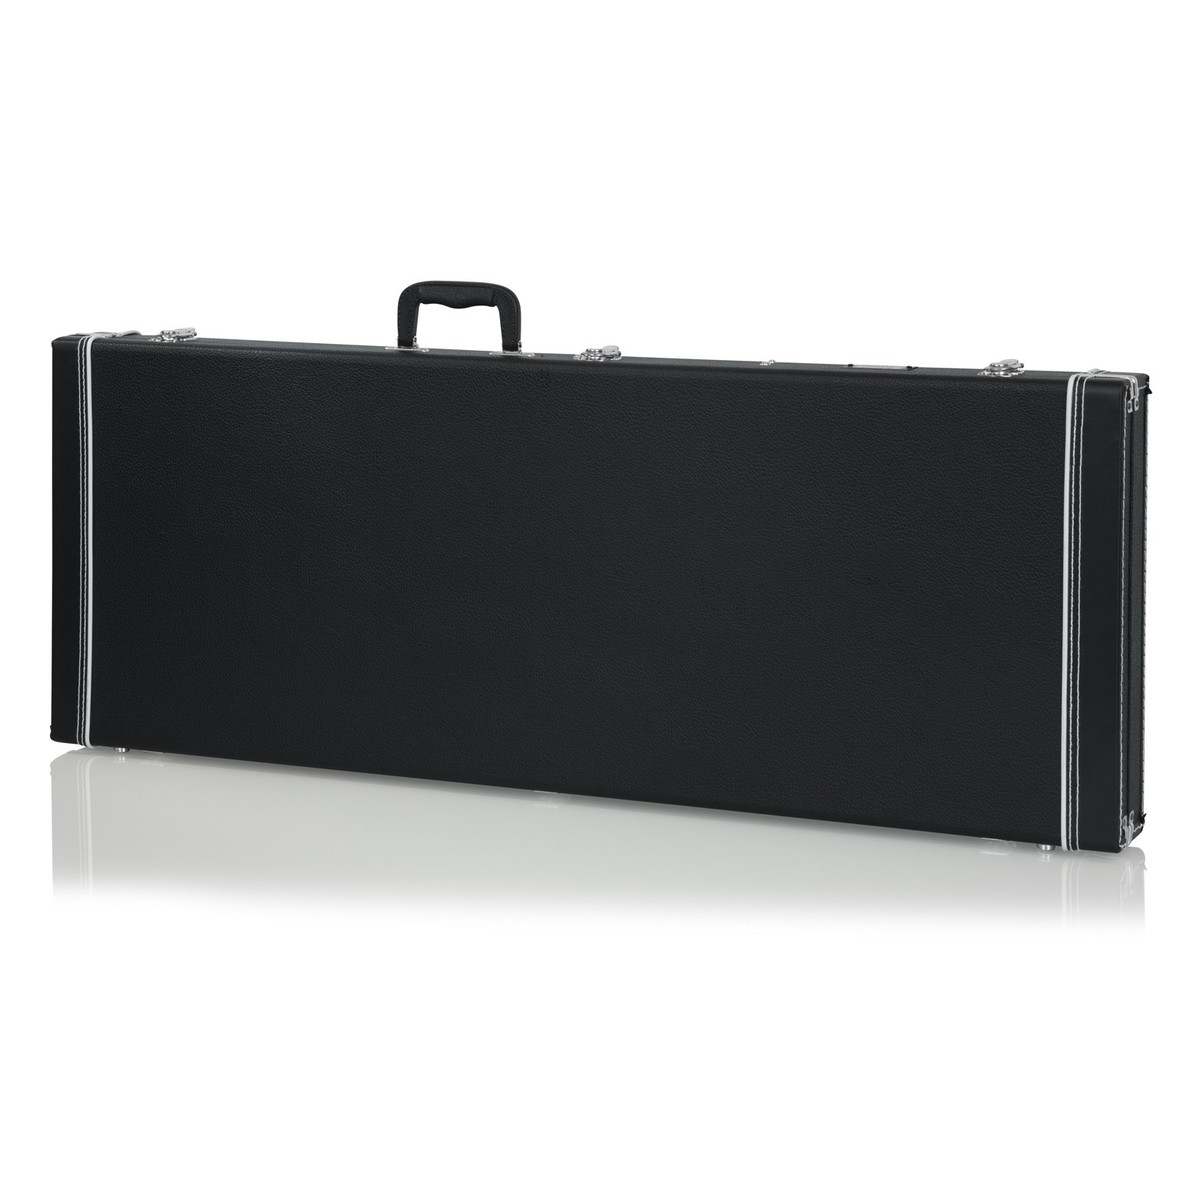 Click to view product details and reviews for Gator Gw Jag Deluxe Offset Electric Guitar Case.